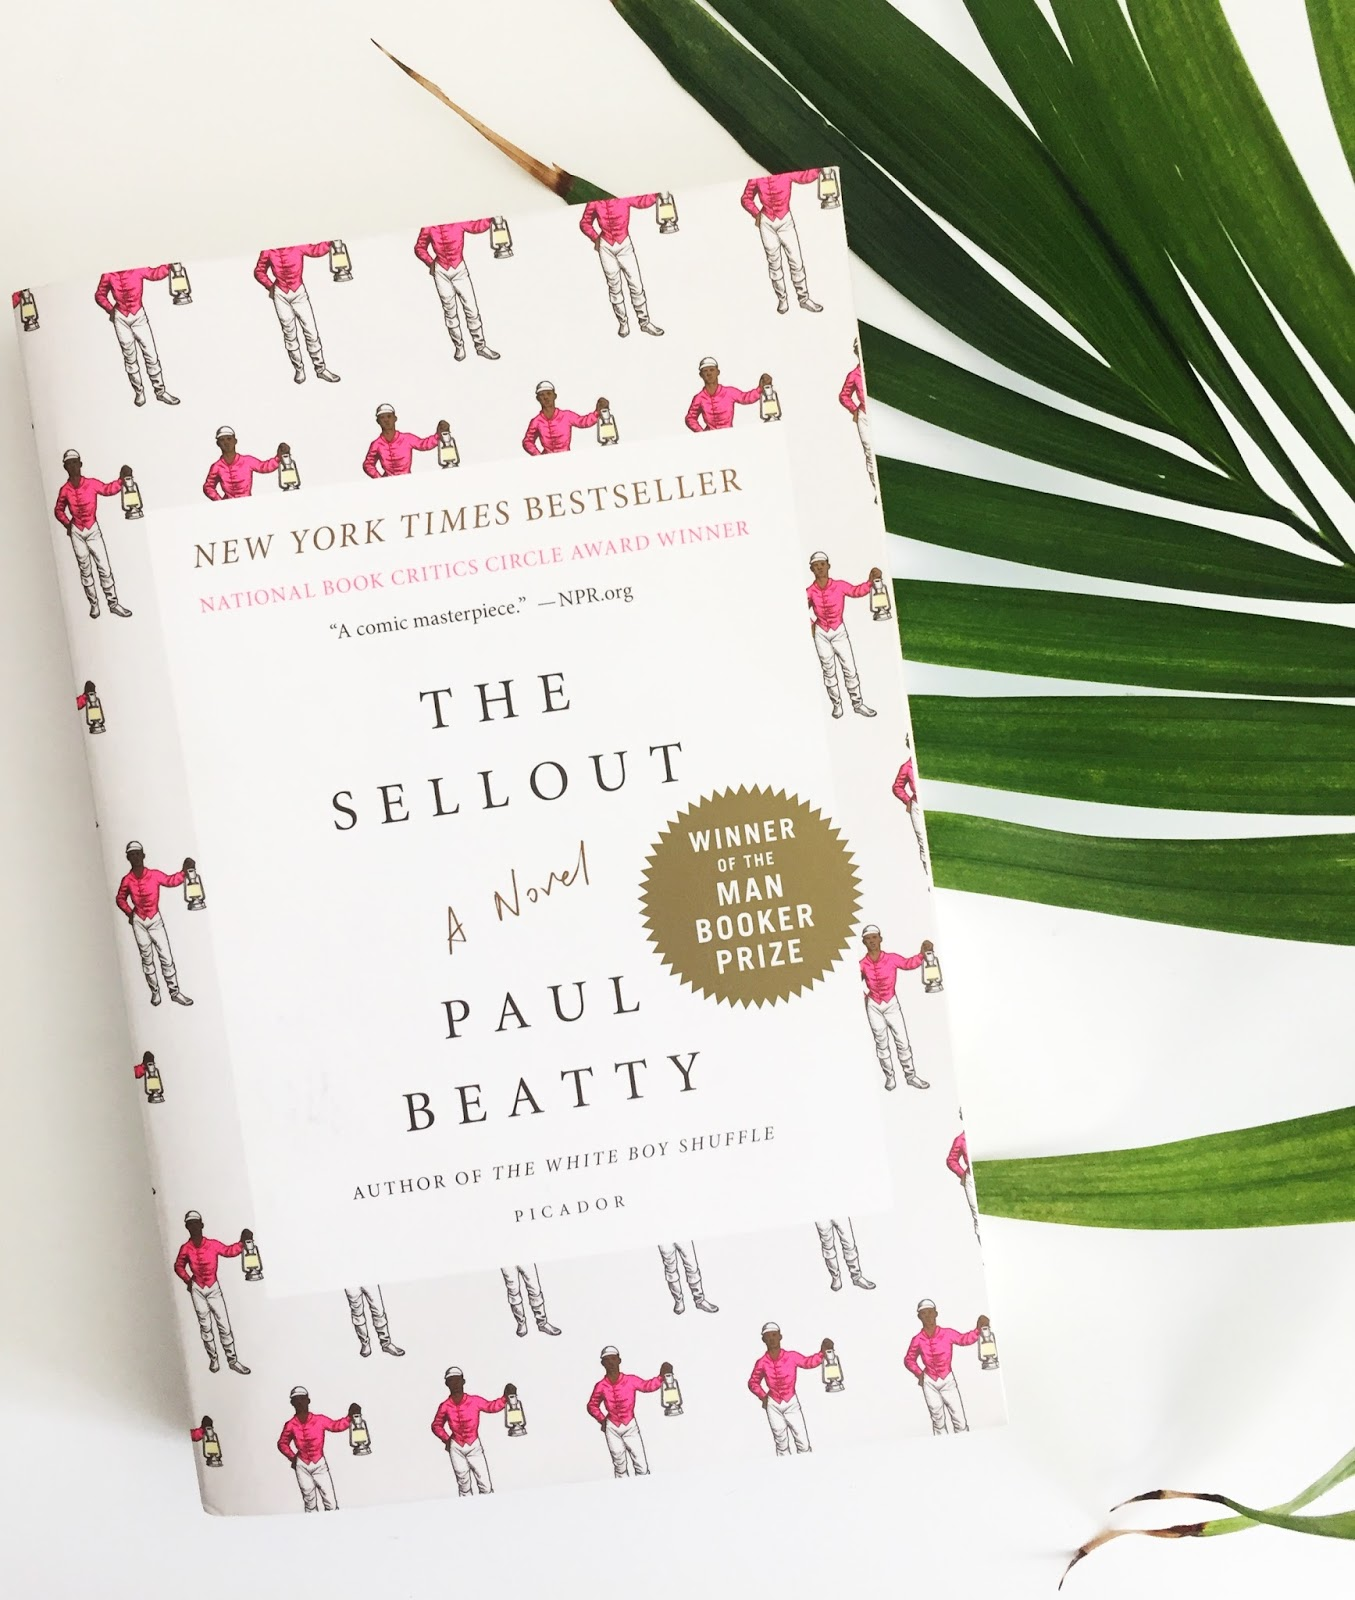 The Sellout by Paul Beatty GS Reads